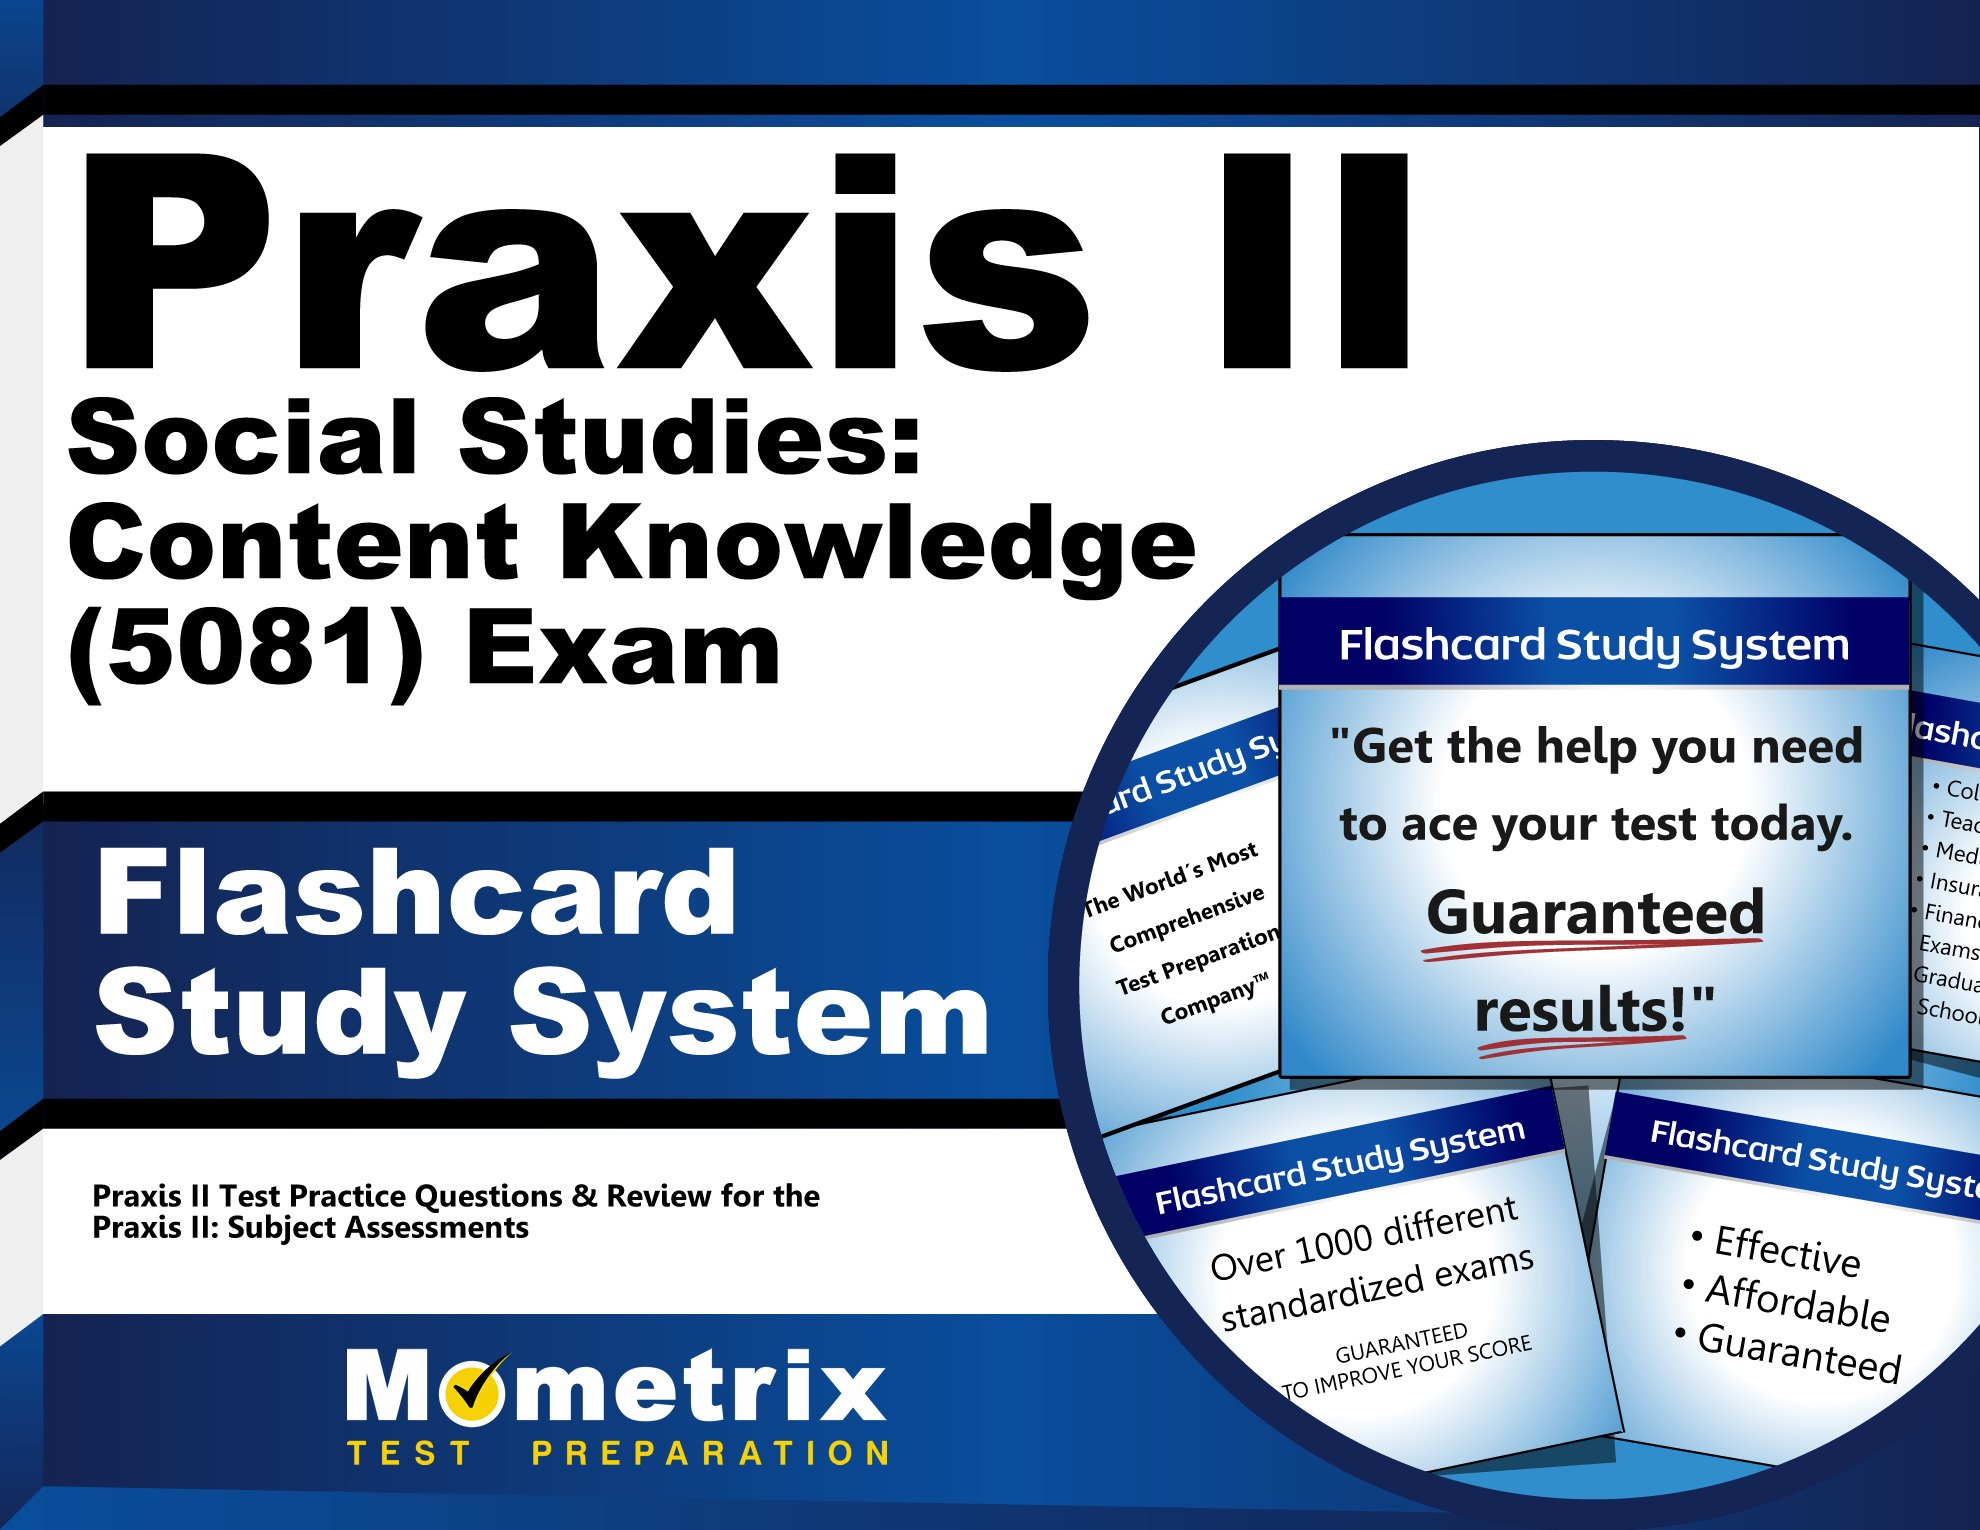 socialstudieshelp dividing a nation com best ideas about preschool  praxis ii social studies content knowledge exam flashcard praxis ii social studies content knowledge 5081 exam